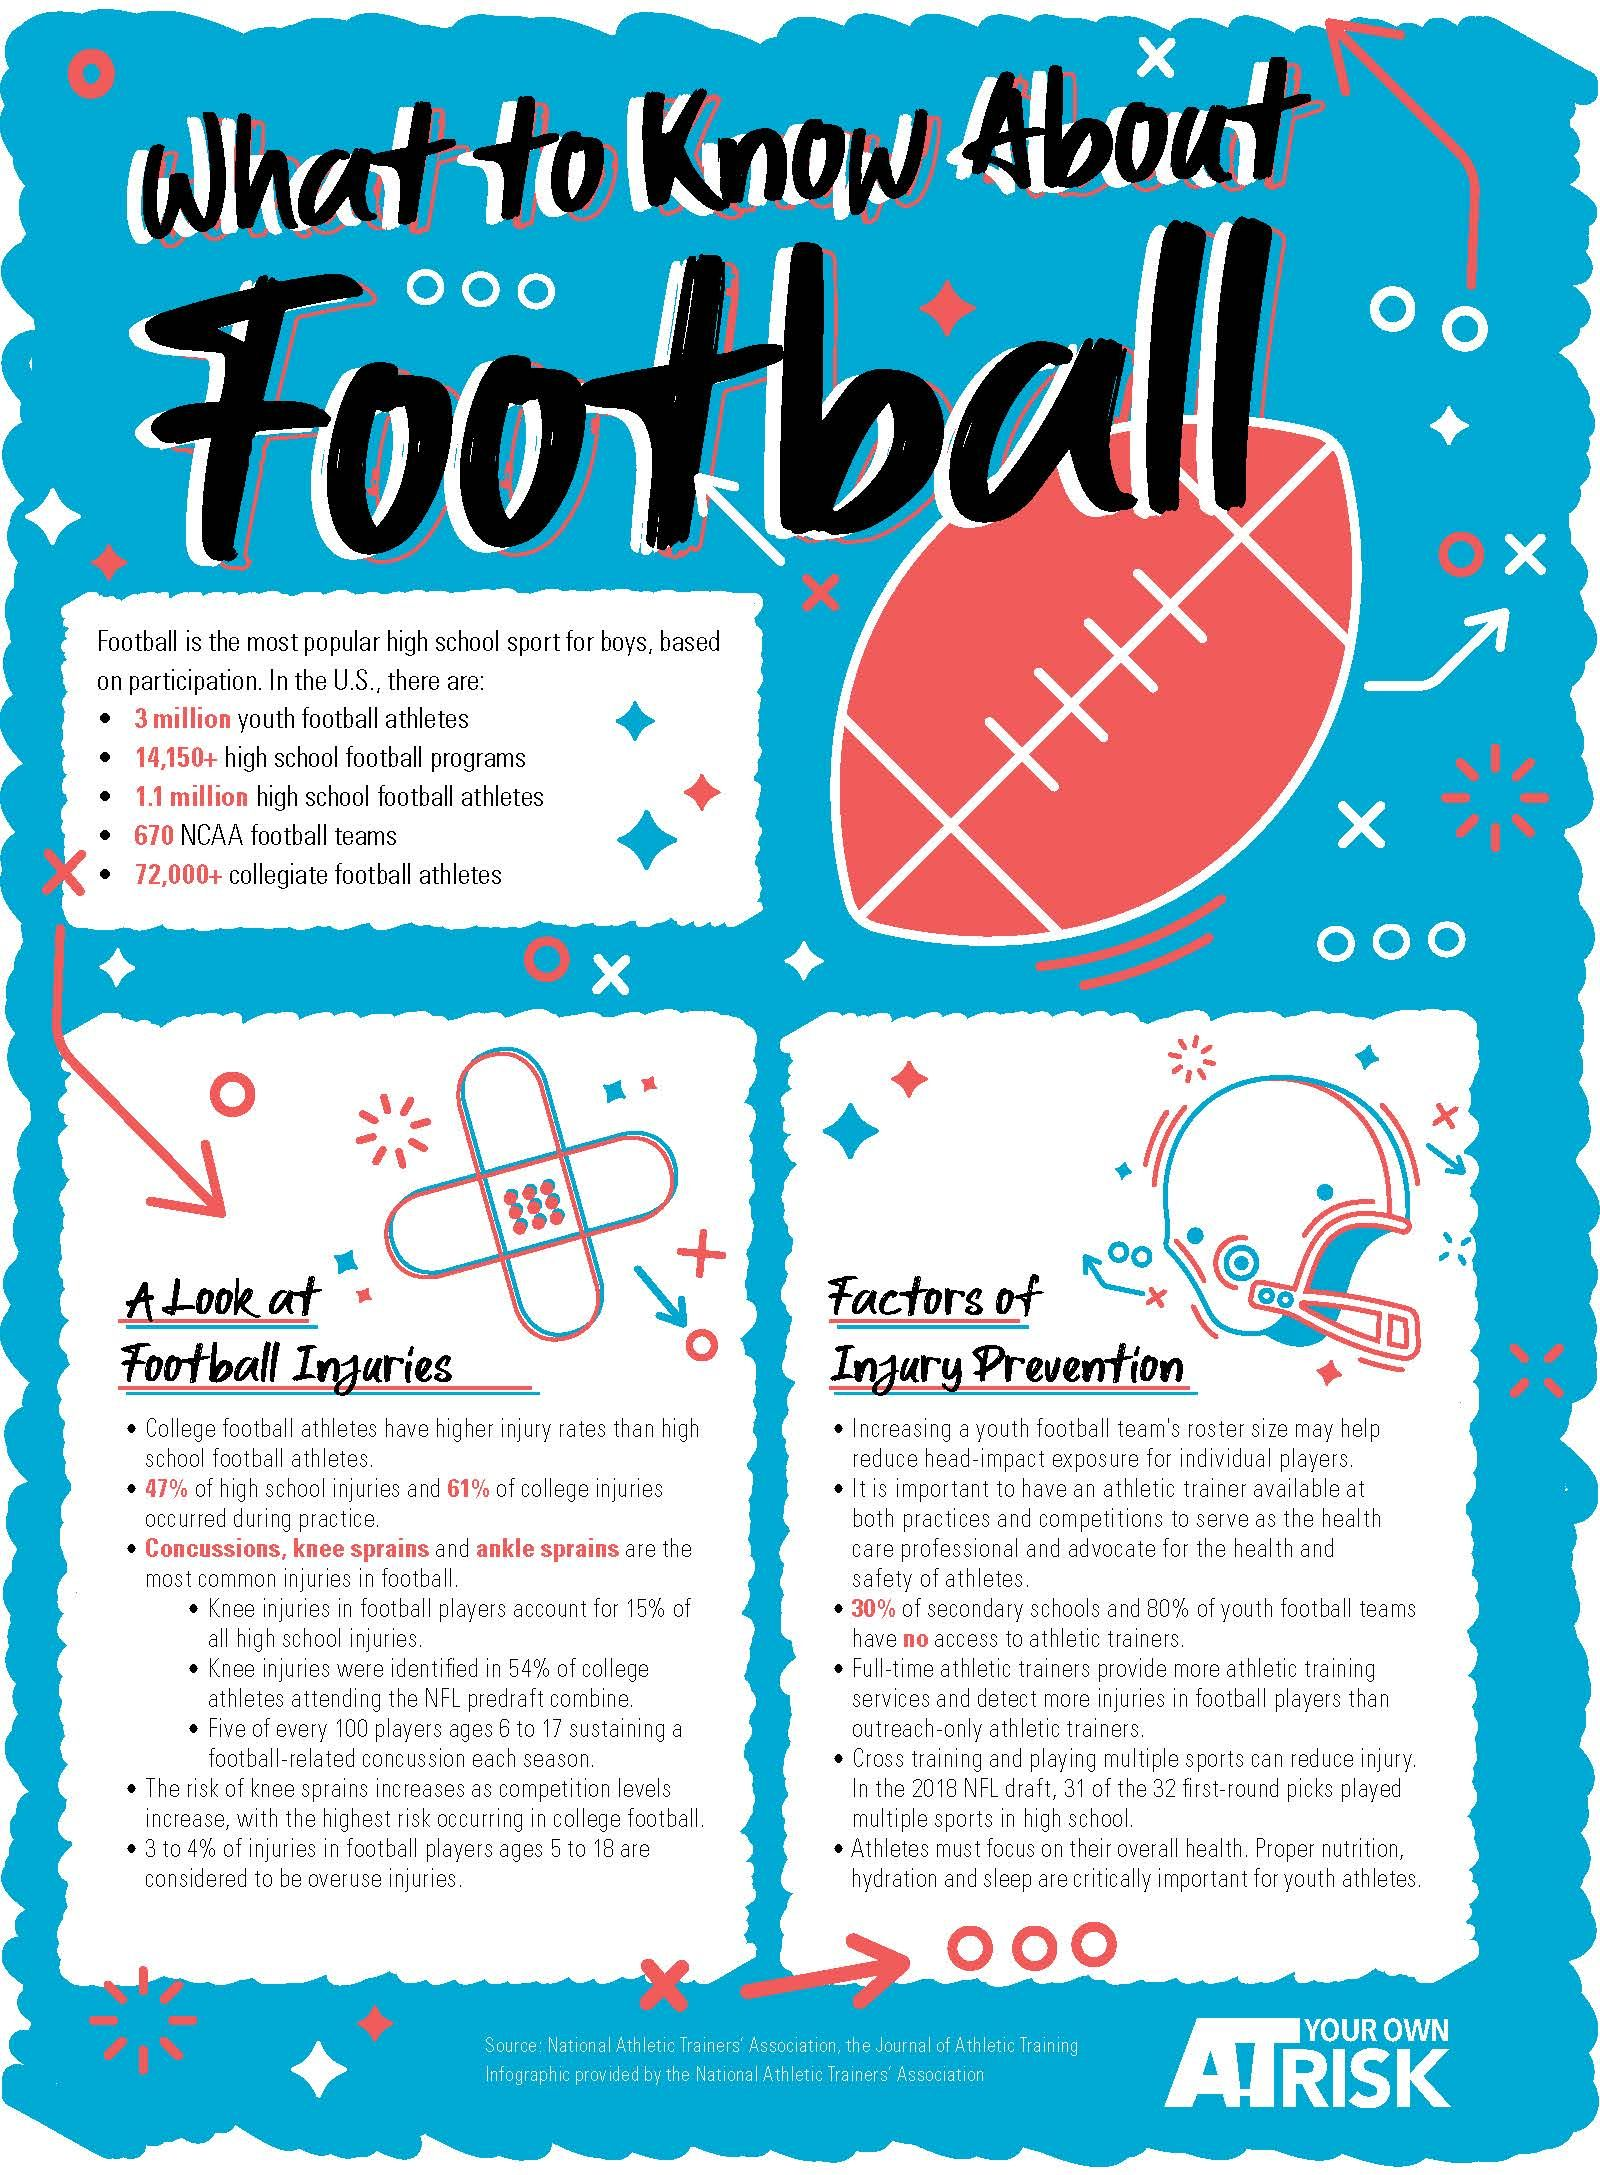 Football is the most popular high school sport for boys